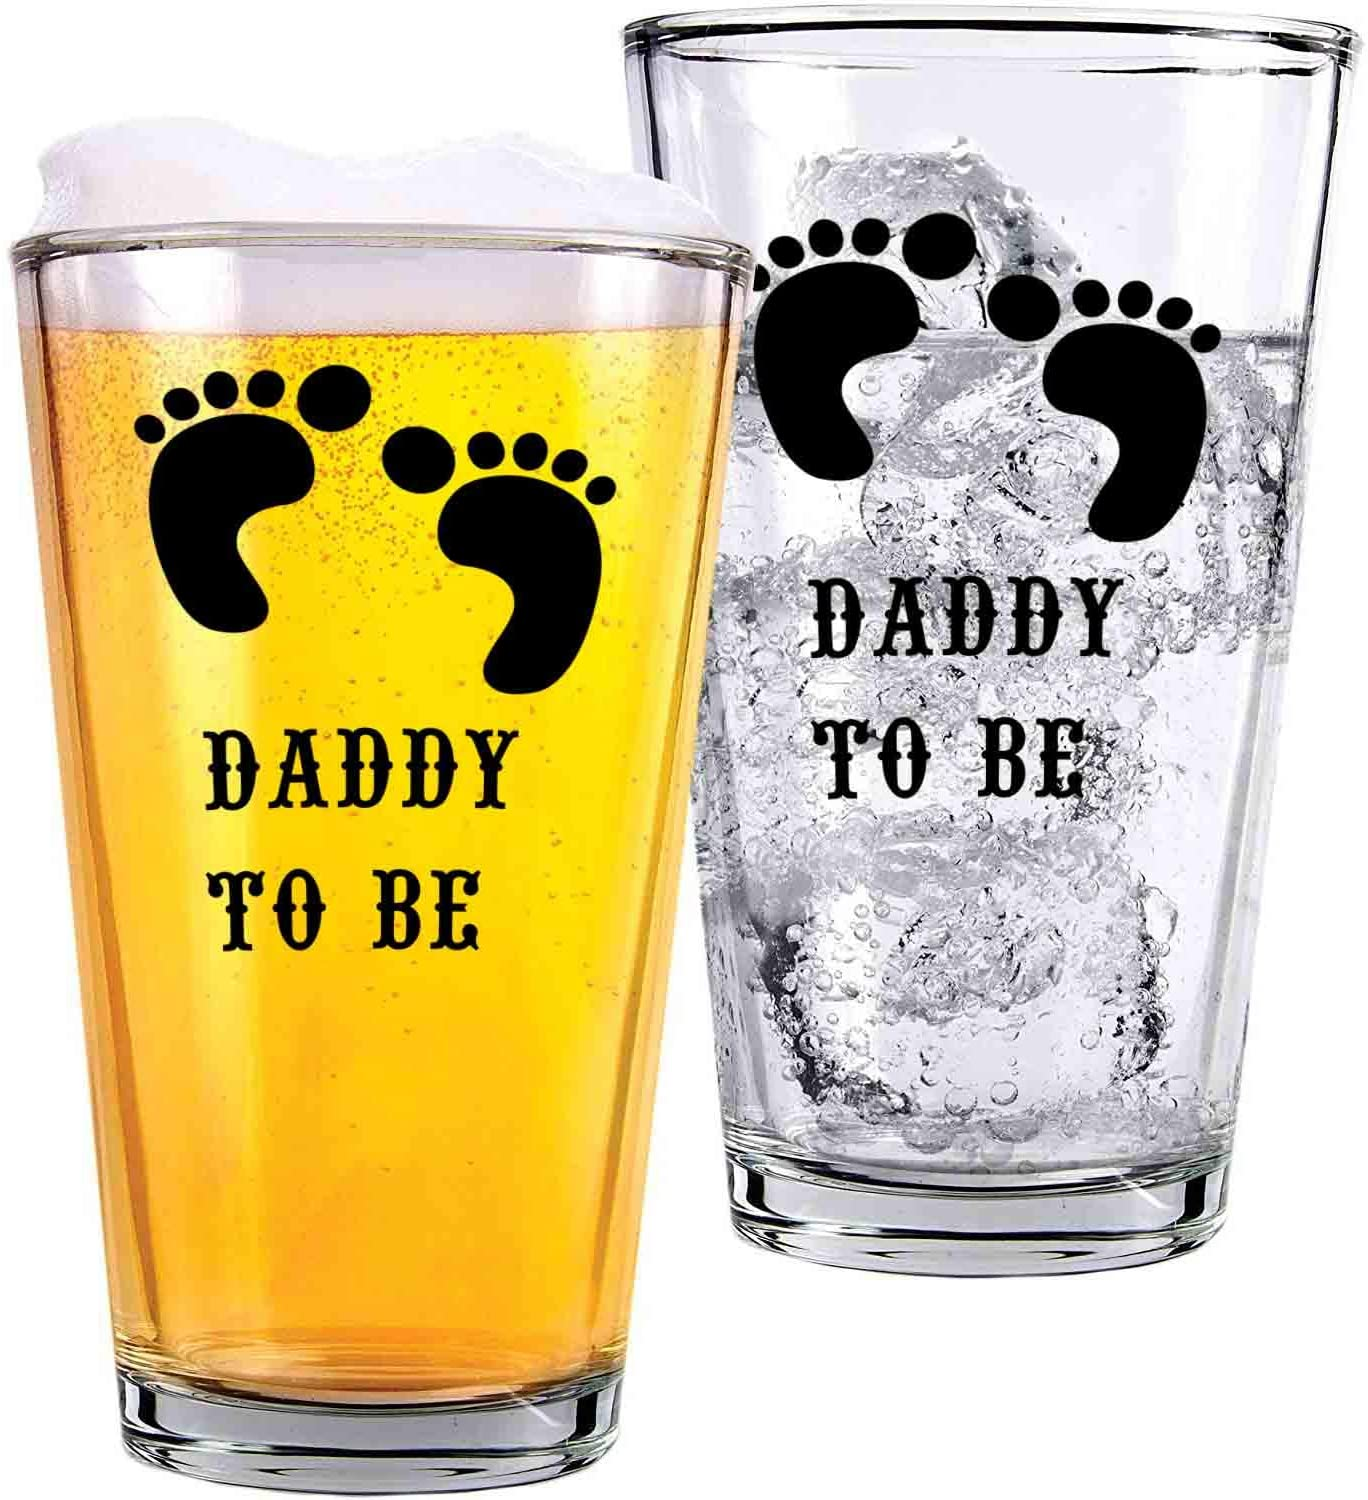 Daddy To Be, Dad, Father, Newborn, Baby - Glass cups - Funny and sarcasm-16oz pint glass cup - two